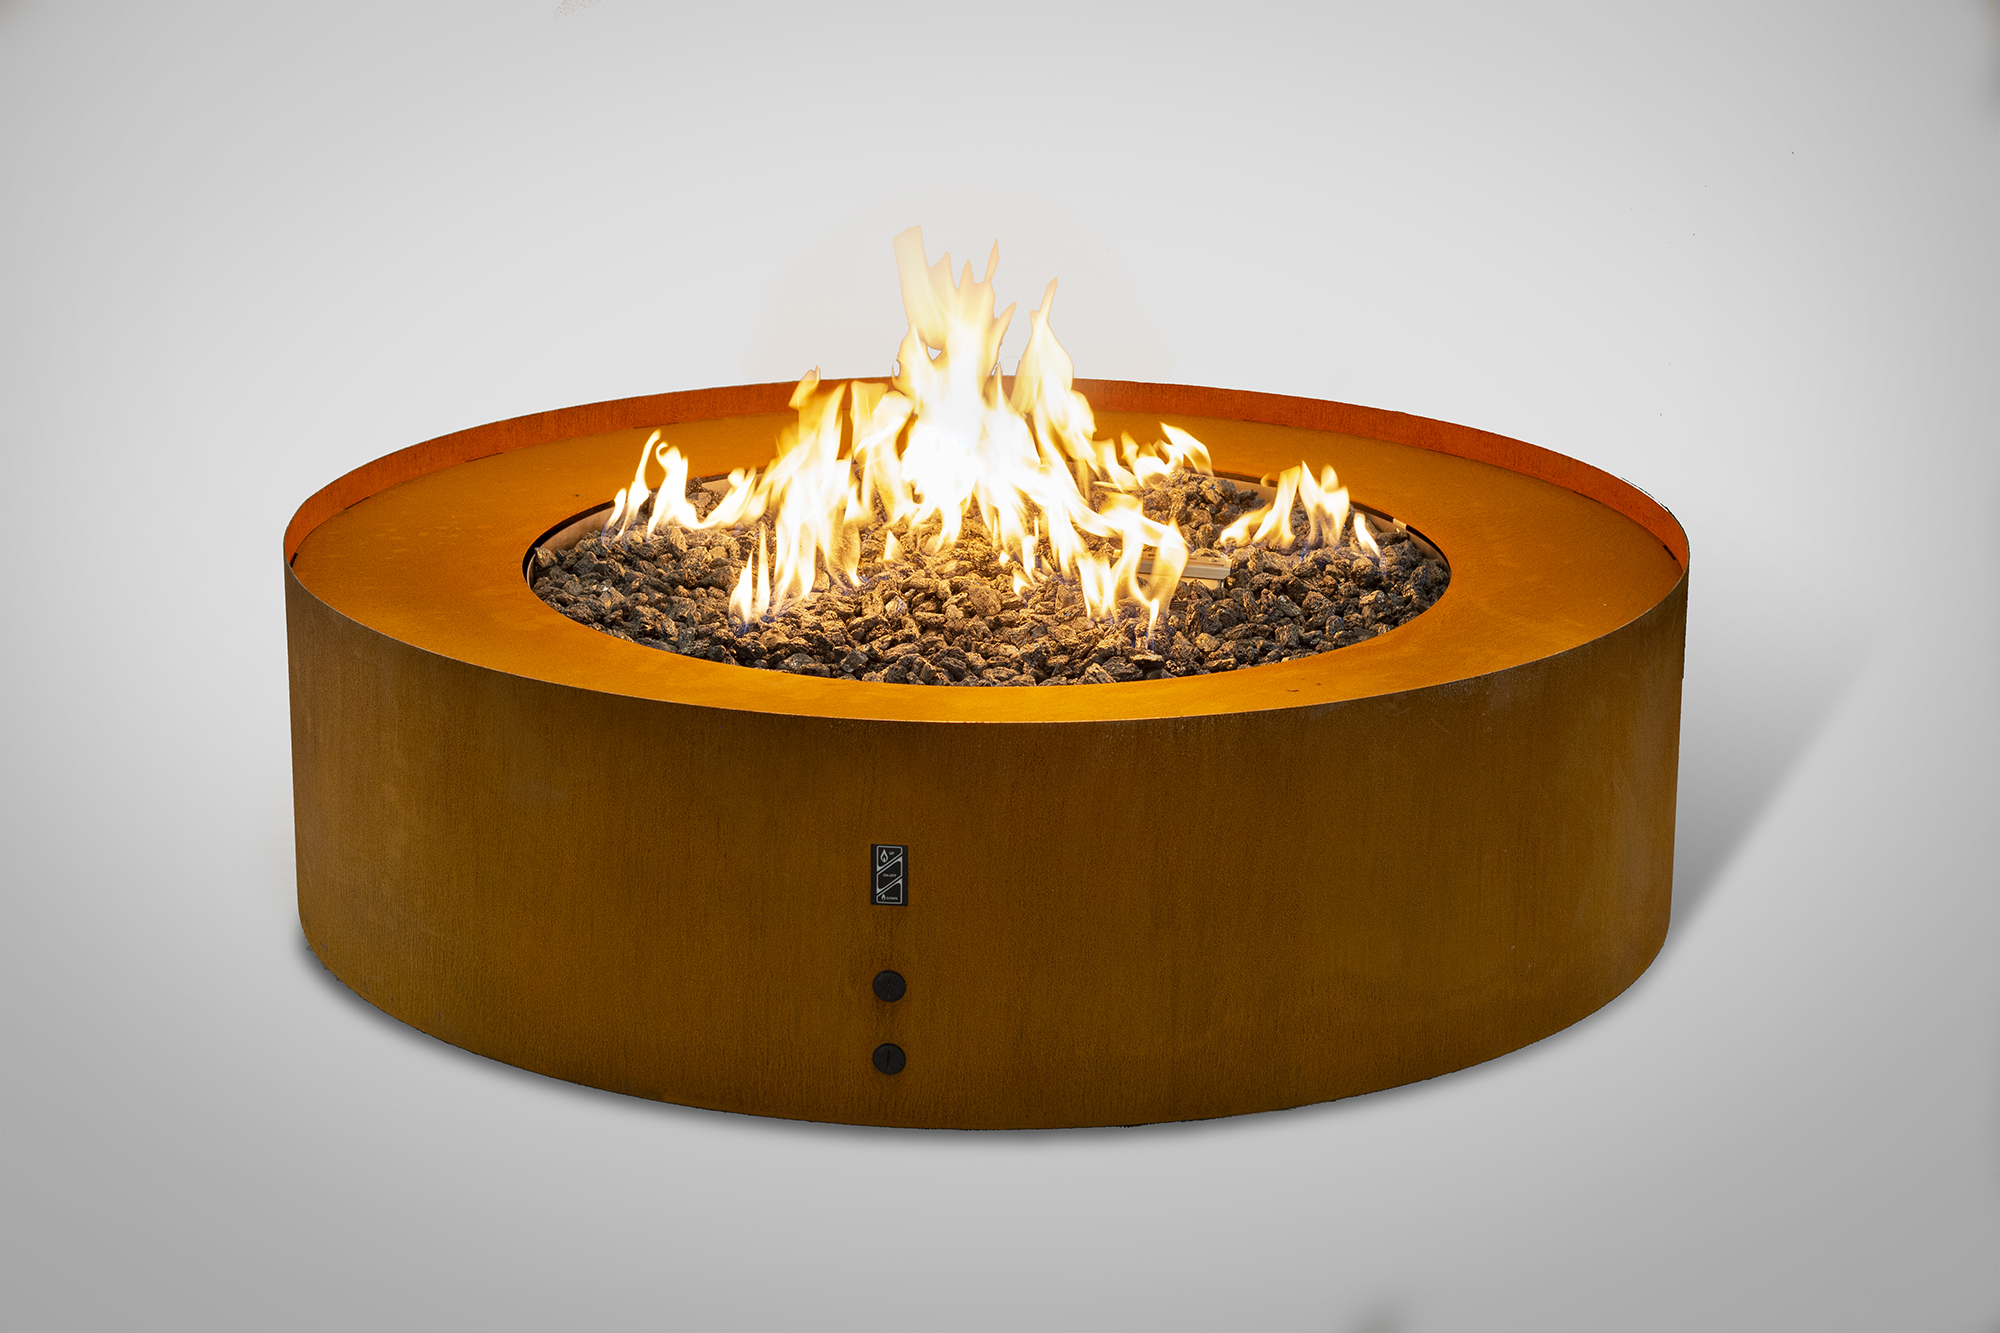 Galio Fire Pit Outdoor Gas Fire